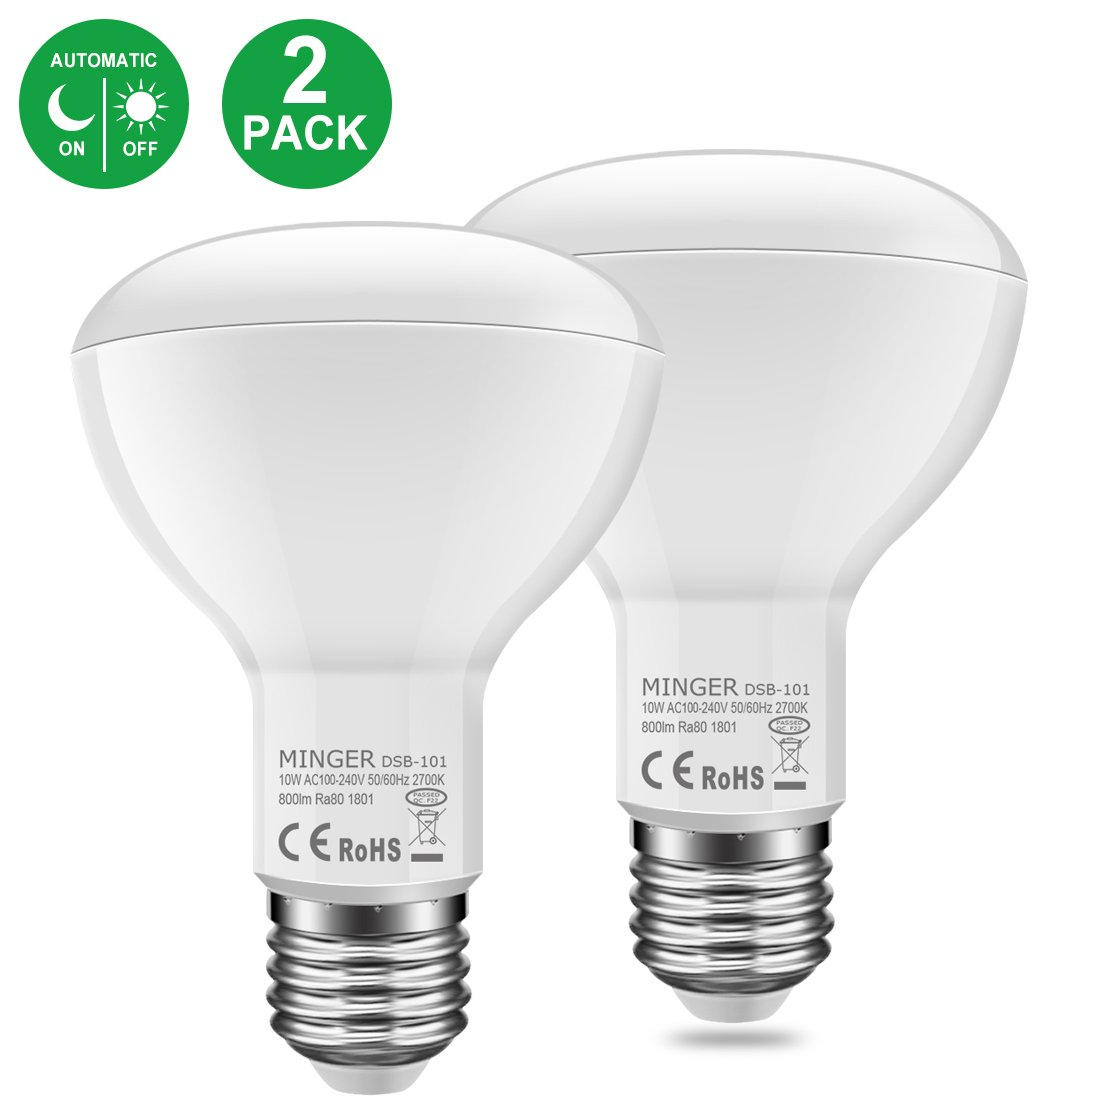 MINGER 10W Dusk to Dawn BR30 LED Bulb Light, Auto Turn On Off, 60W Equivalent, 800 Lumens Soft White 2700K, E27 Base, 120°Beam Angle Spotlight, for Indoor and Outdoor 2 Pack